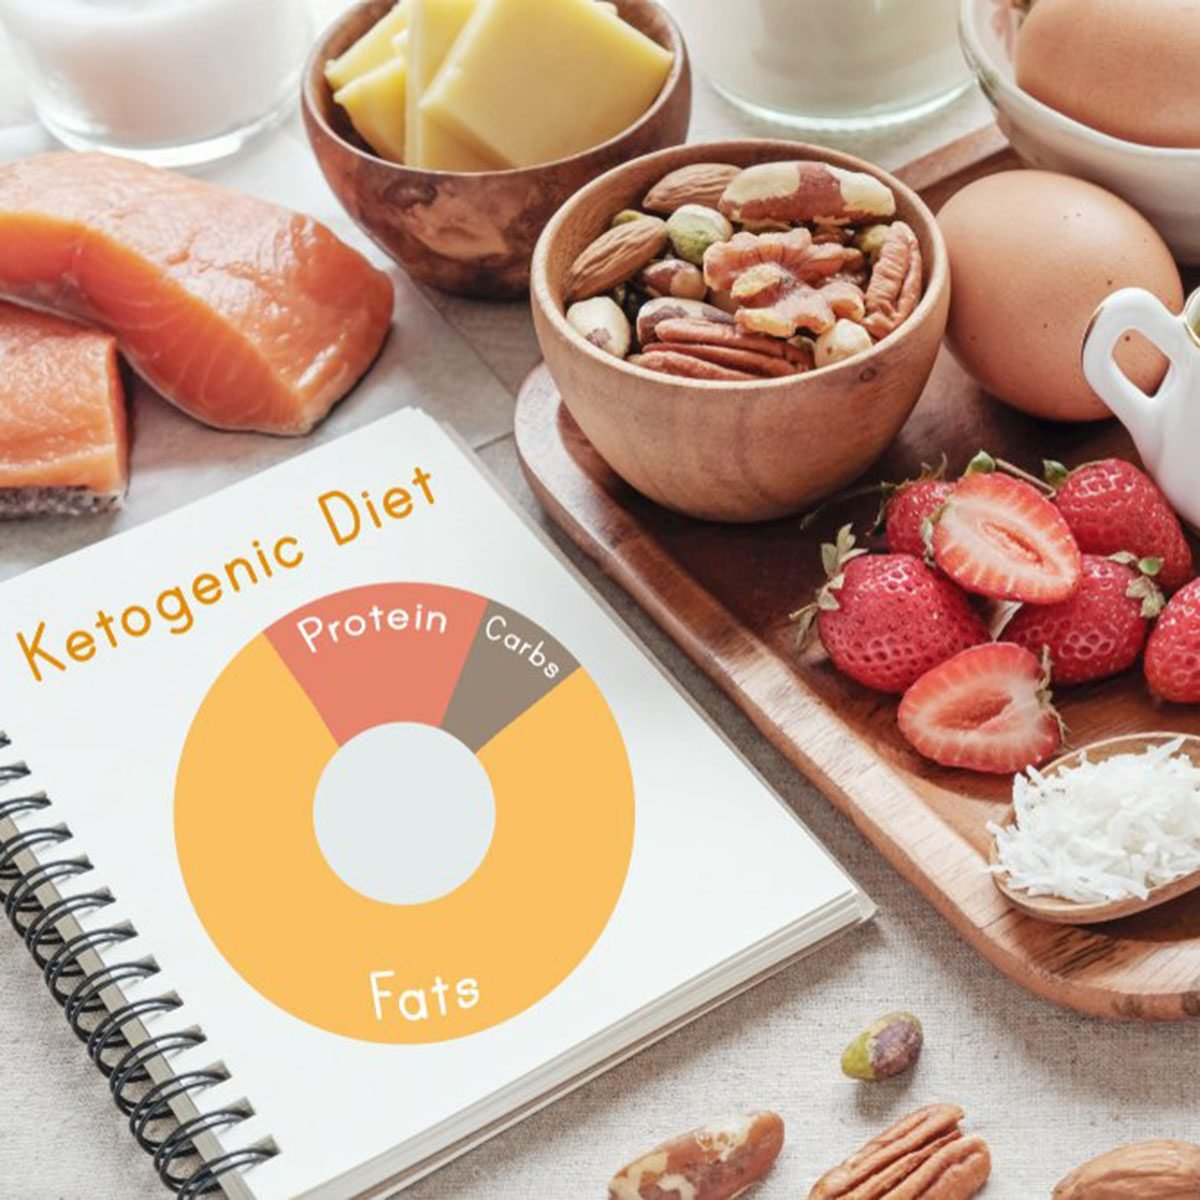 Keto Diet Food List